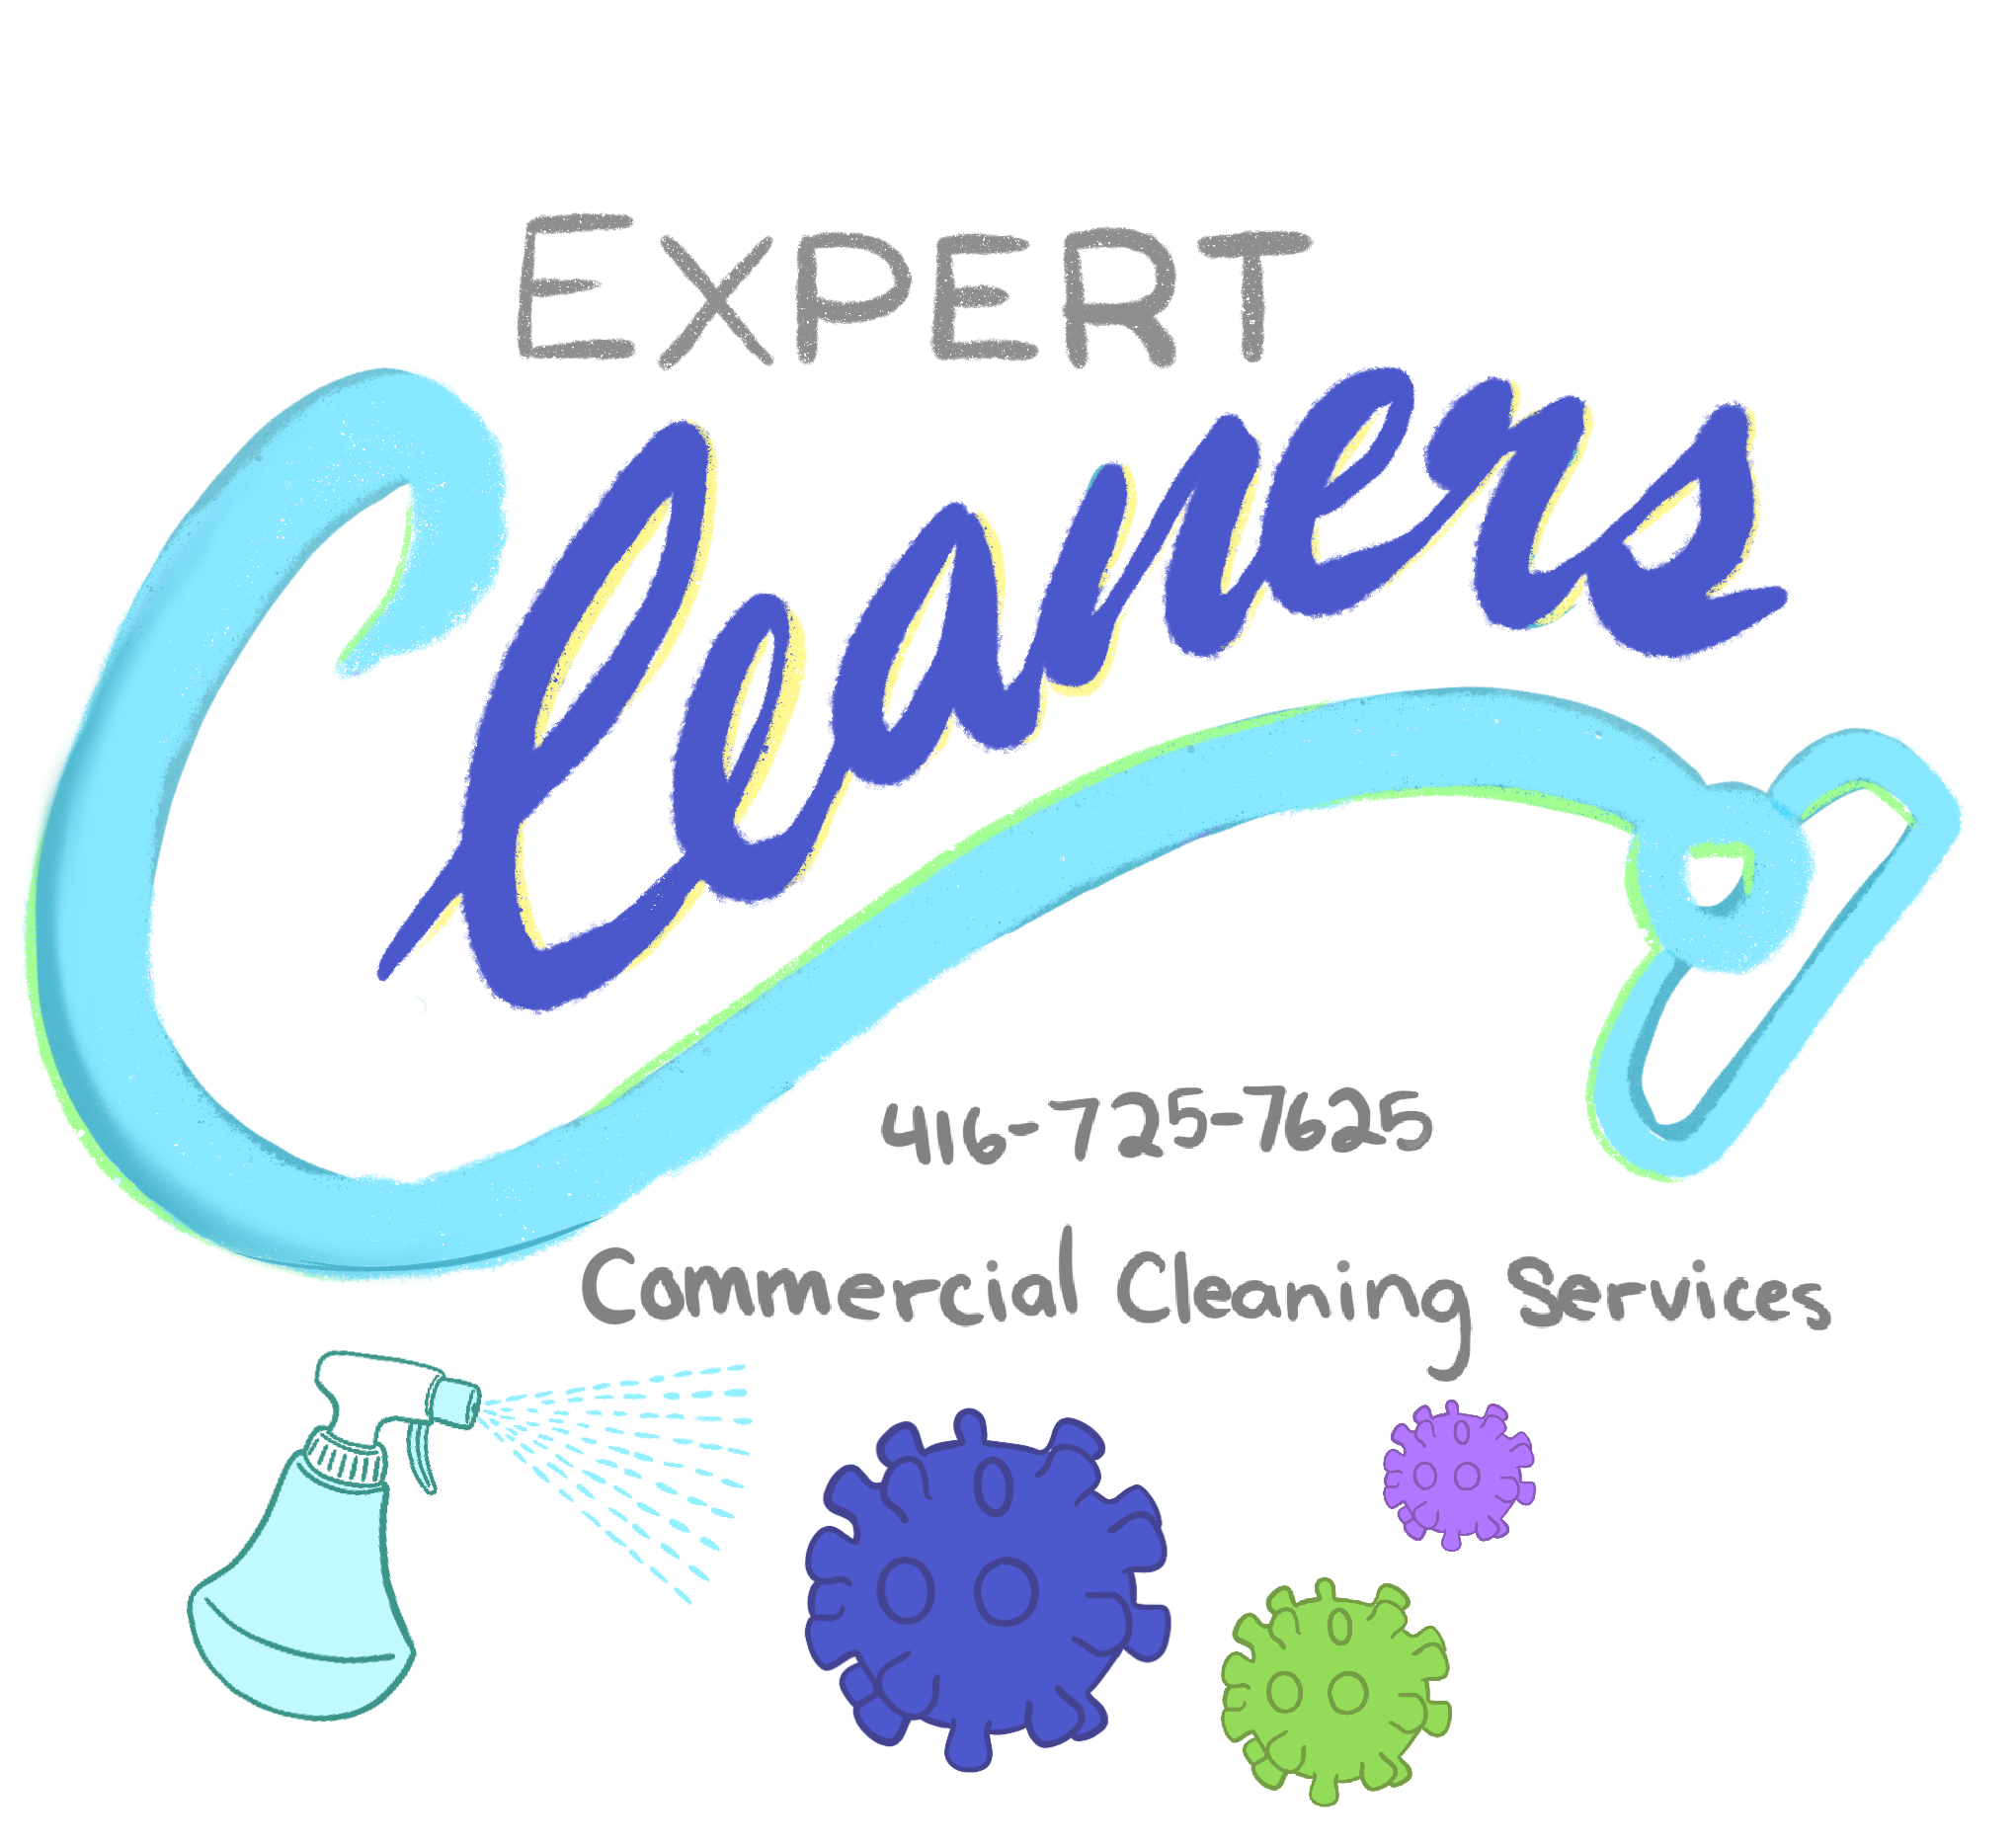 Superintendent Relief Services Markham | Experts Cleaners Inc